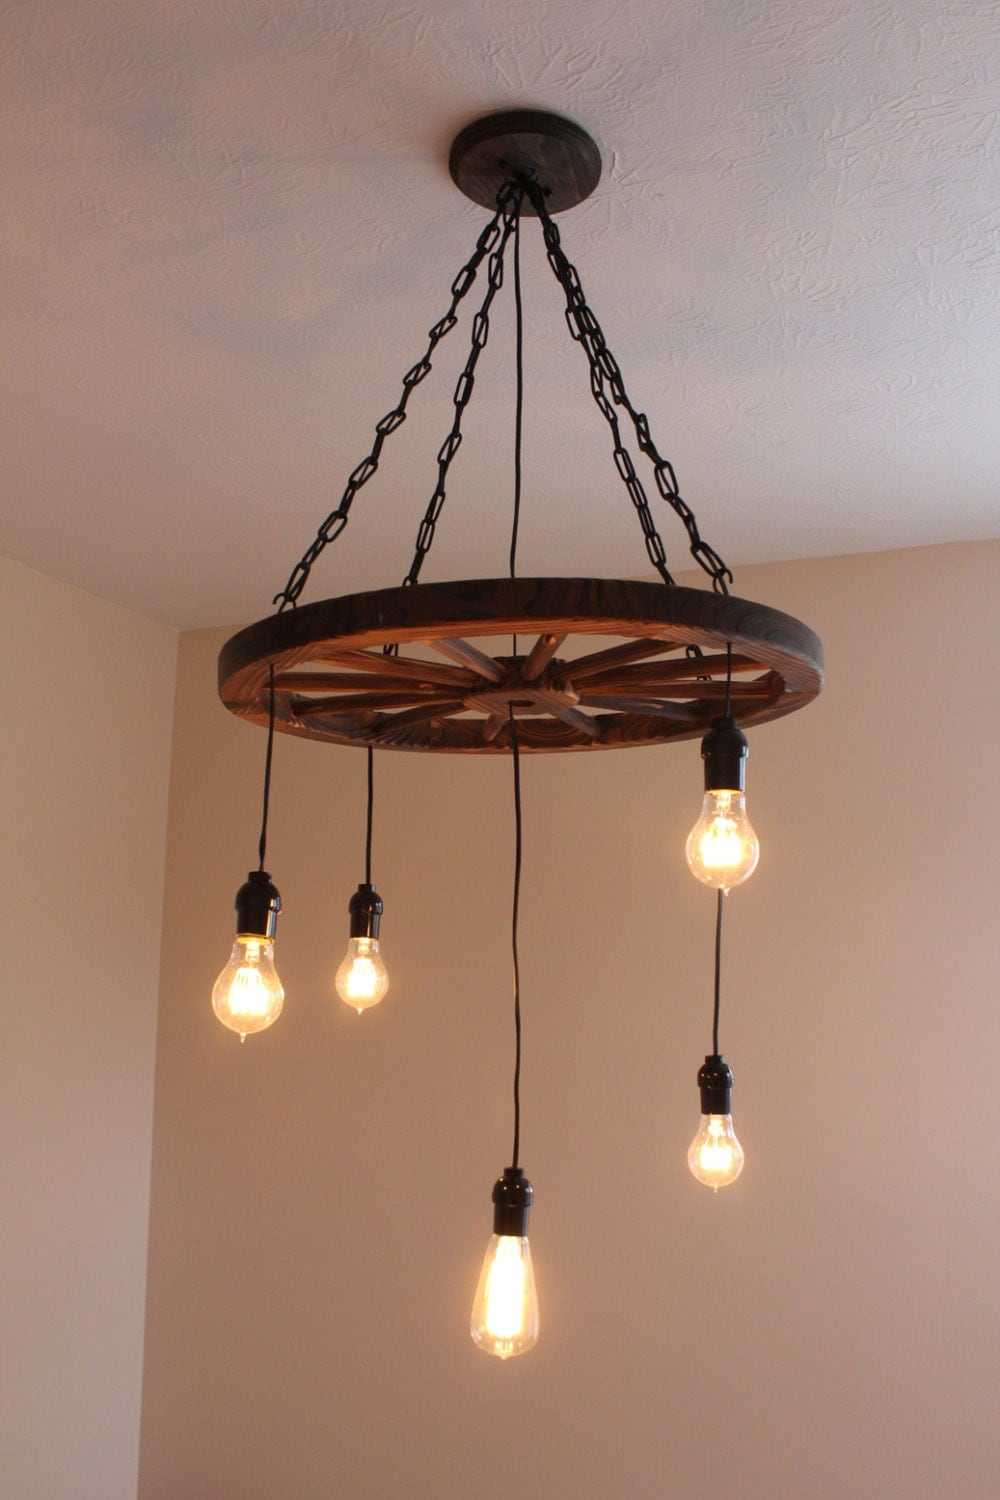 Vintage Industrial Wagon Wheel Chandelier. Coastal Pendant Lights. Bird On A Branch. Subway Tile With Gray Grout. Bubble Tile. Lowes Dublin Ohio. Room Pictures. Centerline Brackets Coupon Code. Wall To Wall Carpet